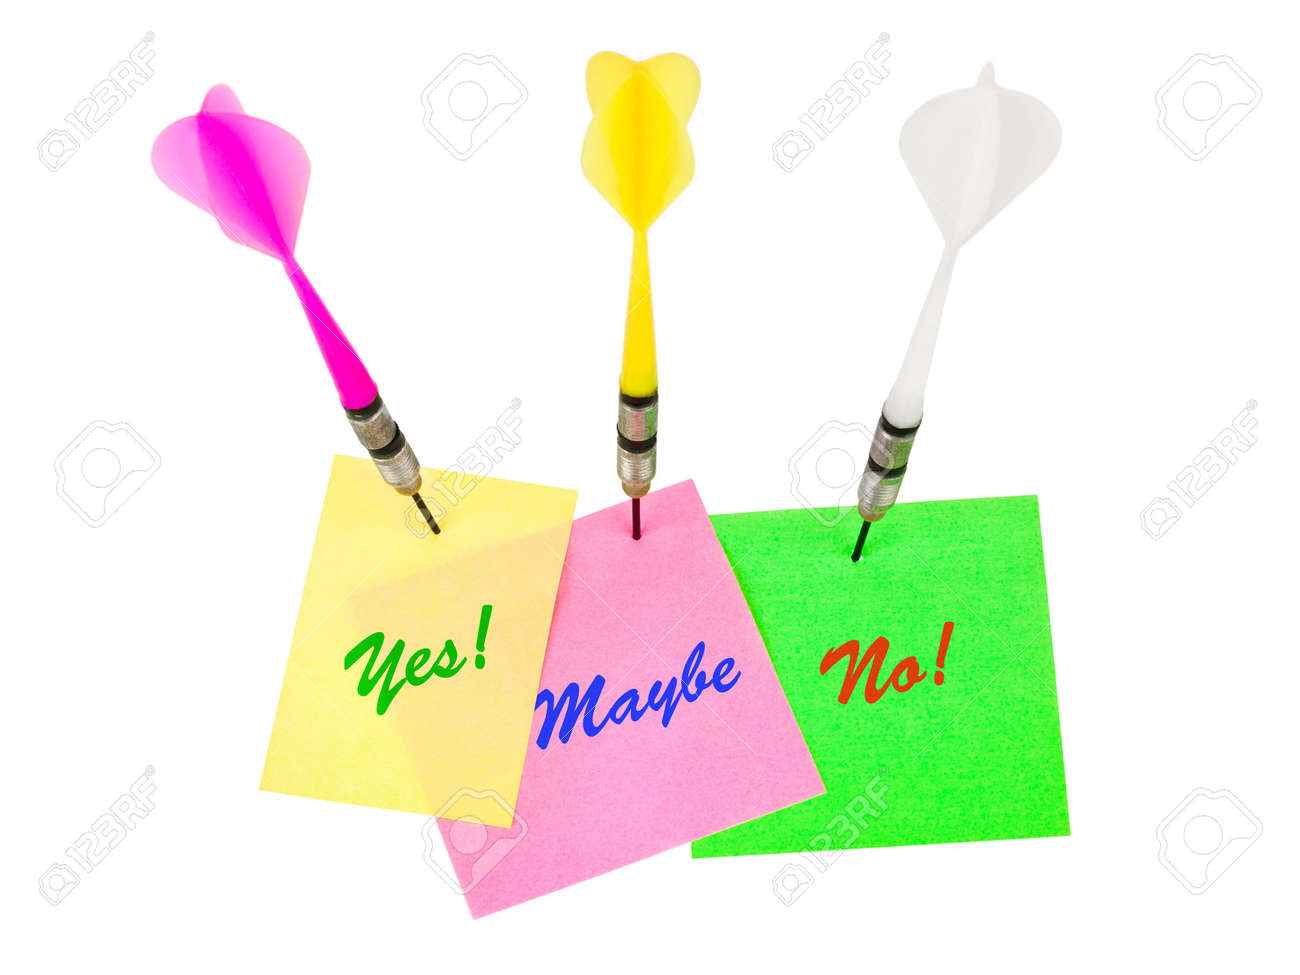 Note papers and darts arrows isolated on white background Stock Photo - 6520941